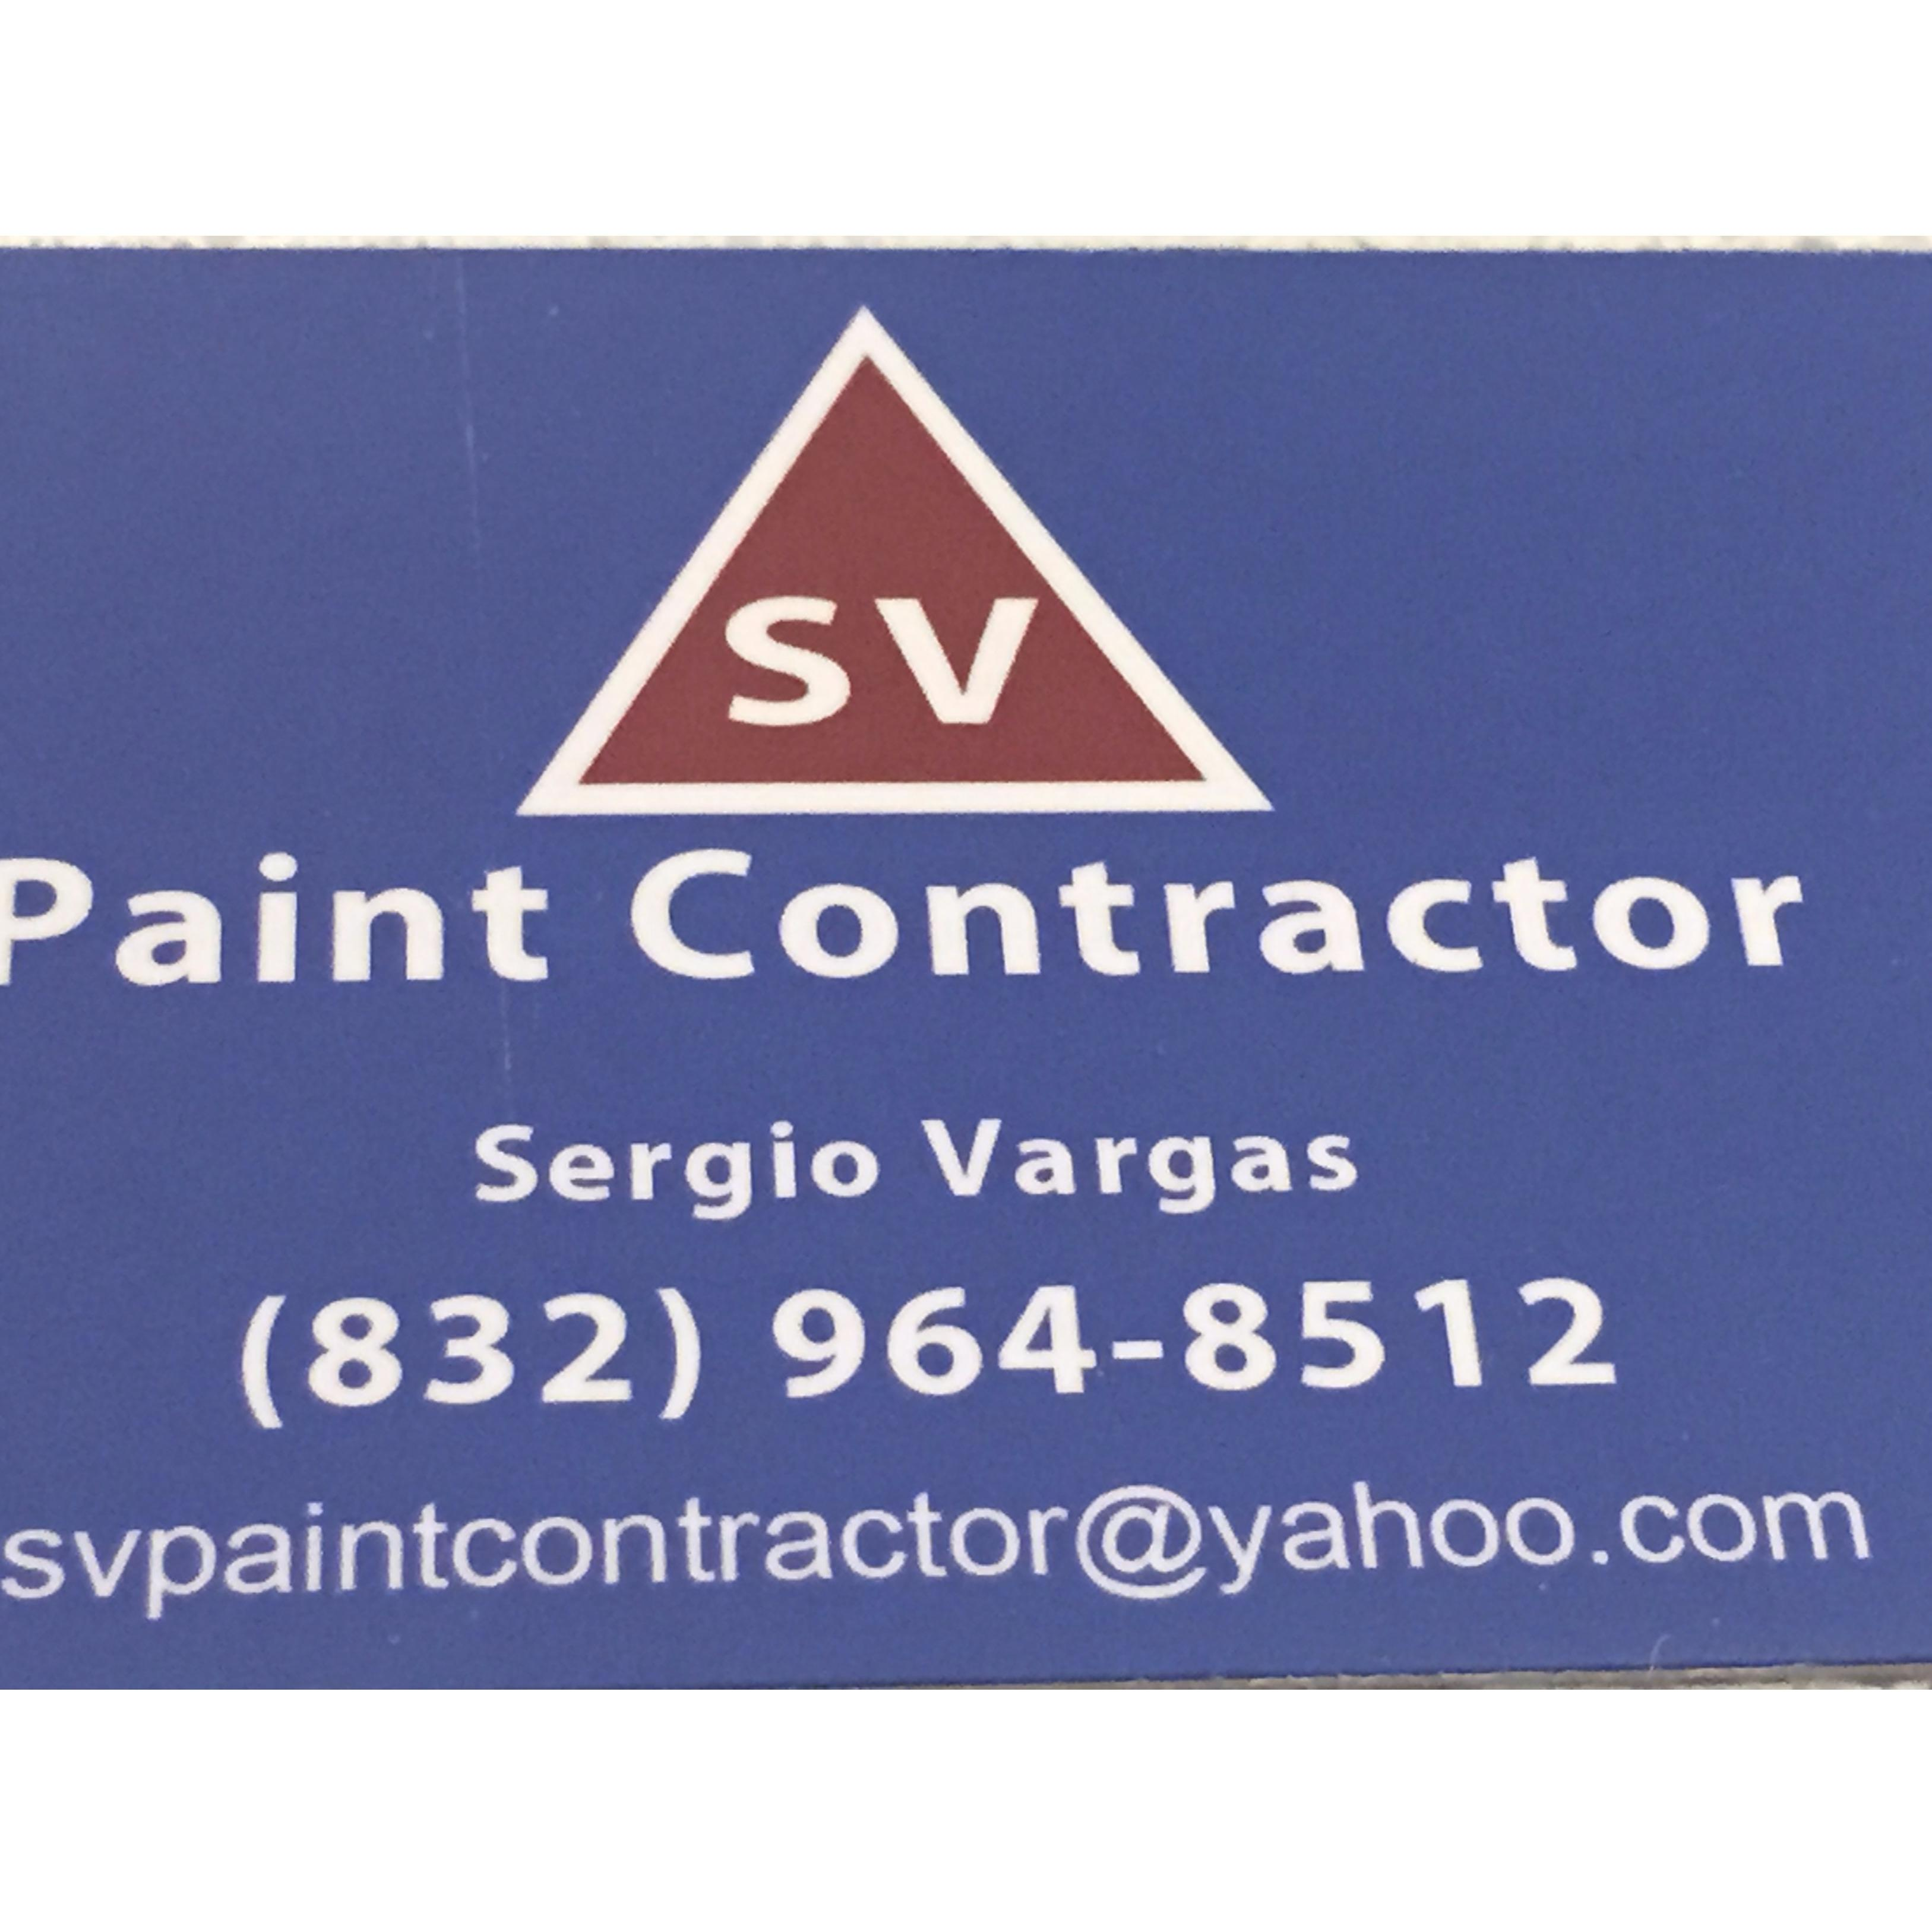 SV Paint Contractor